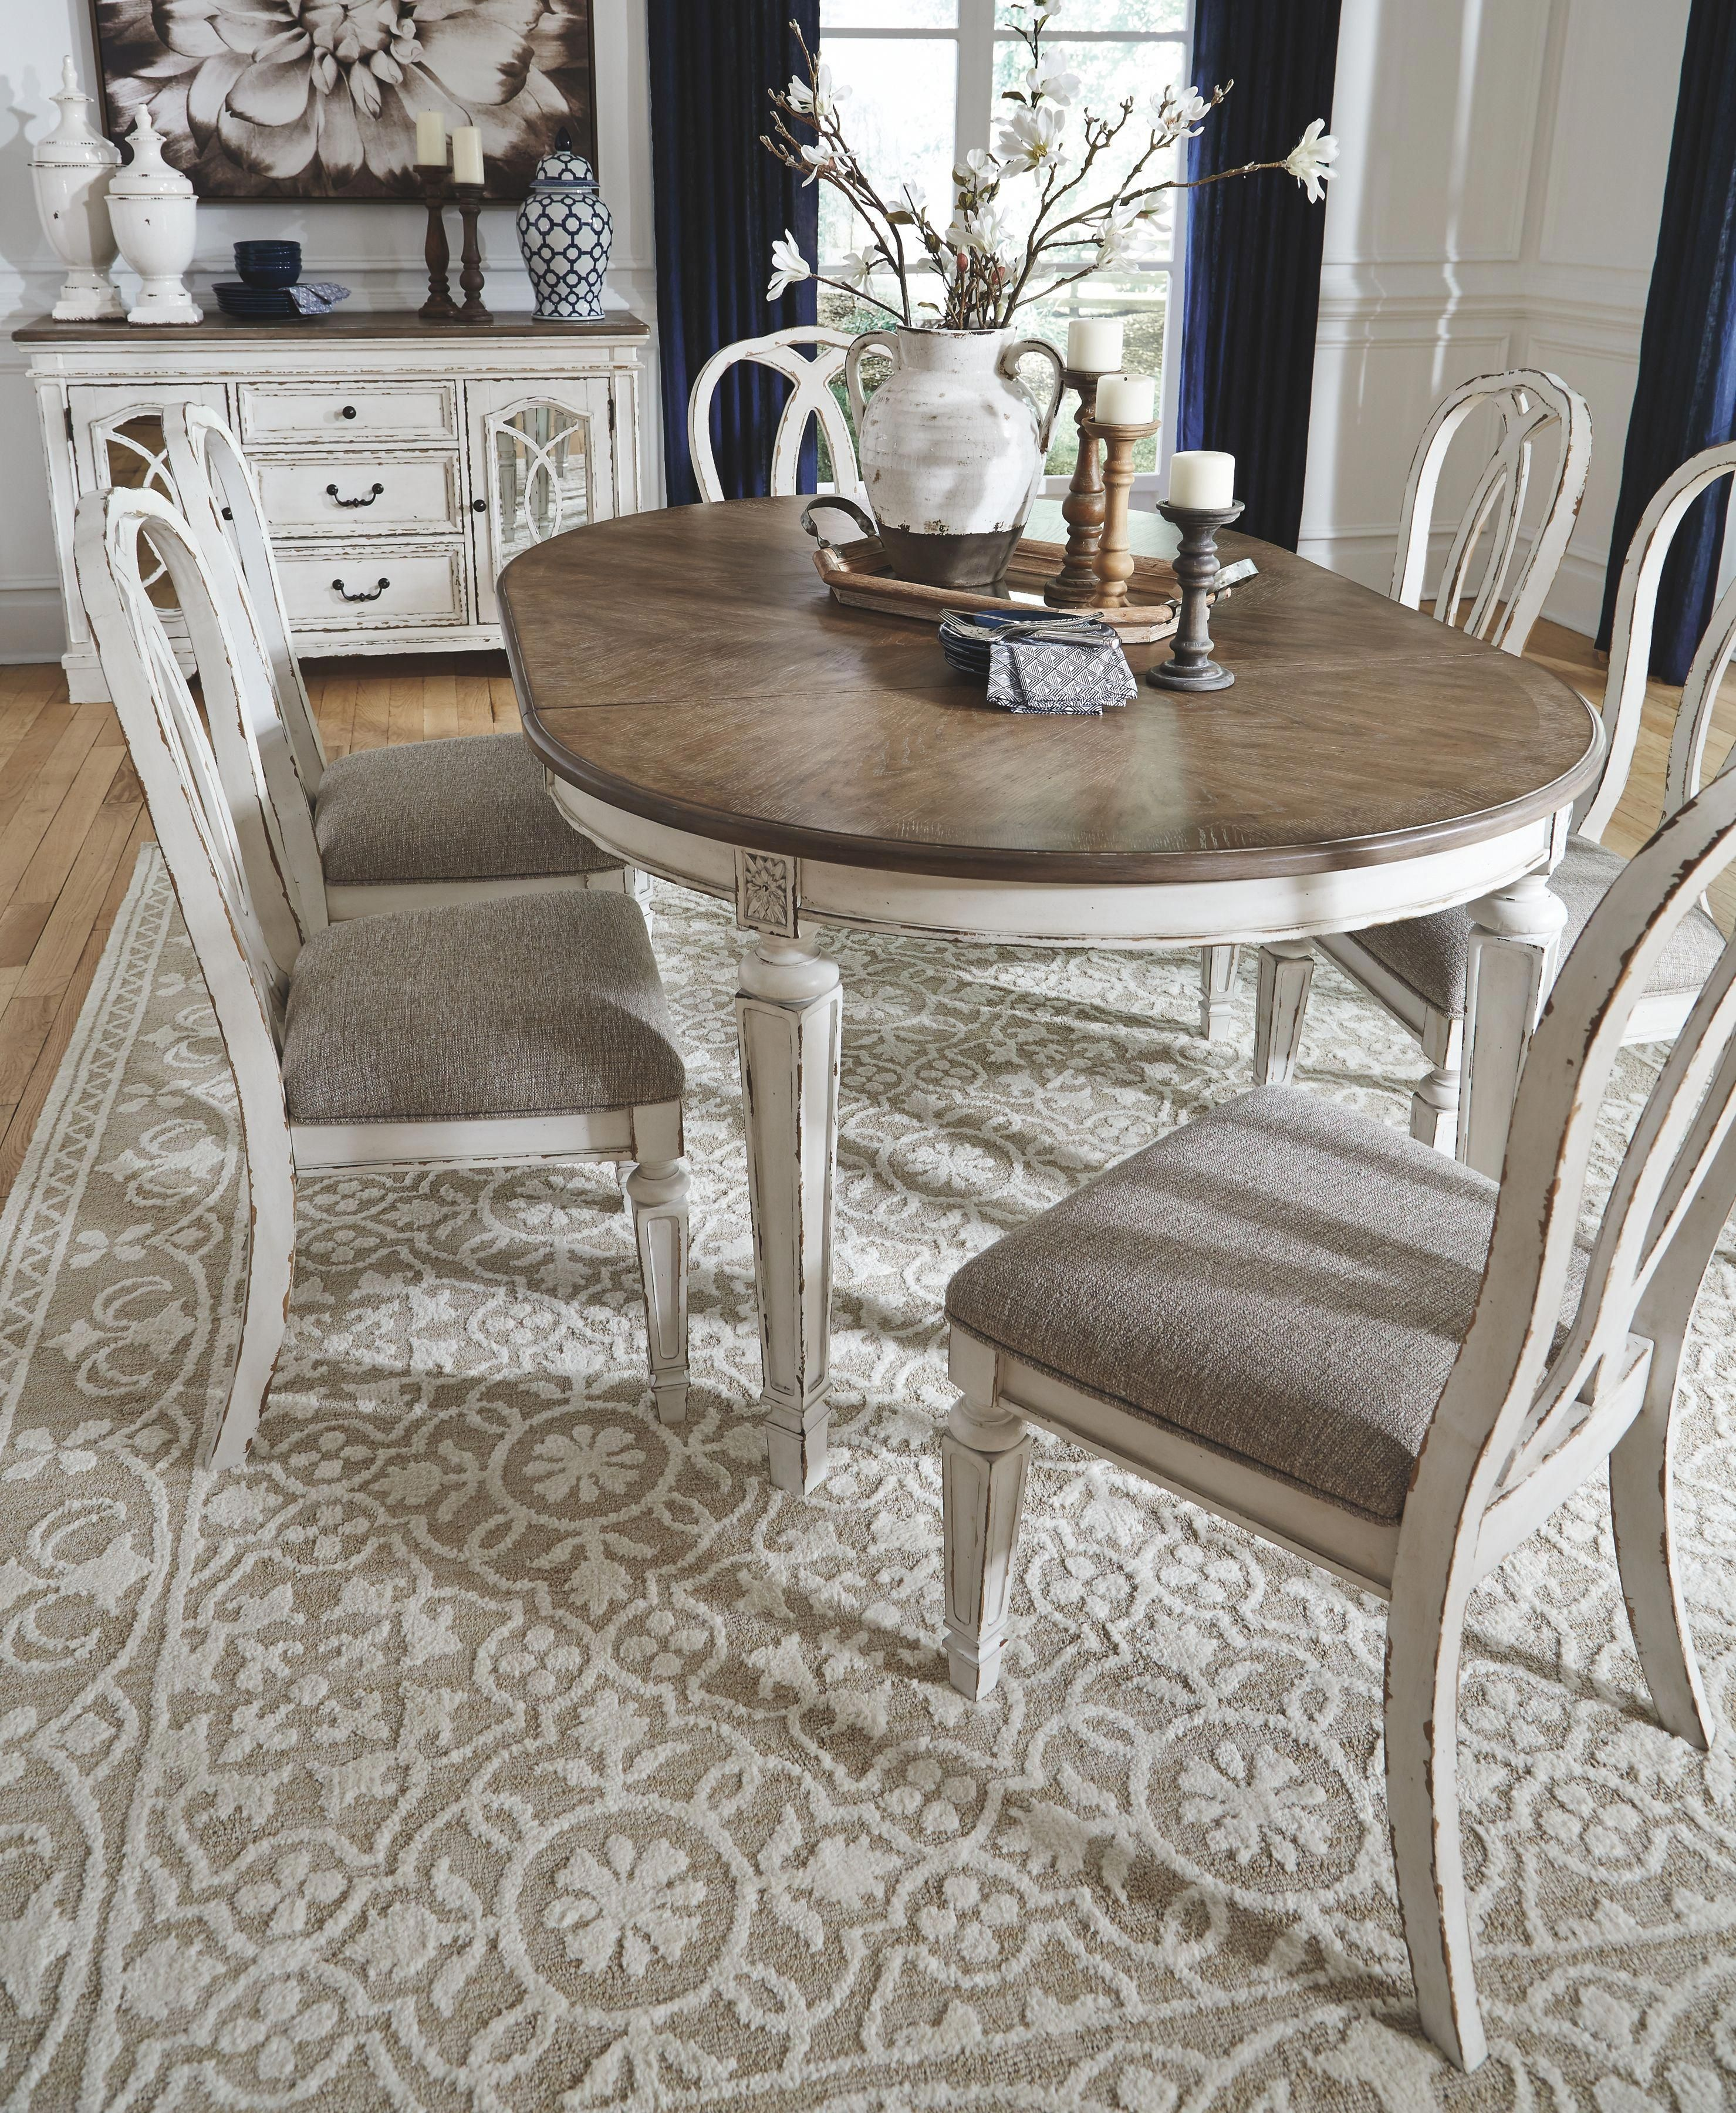 Rustic Antique Kitchen Idea Dining Room Table Decor Dining